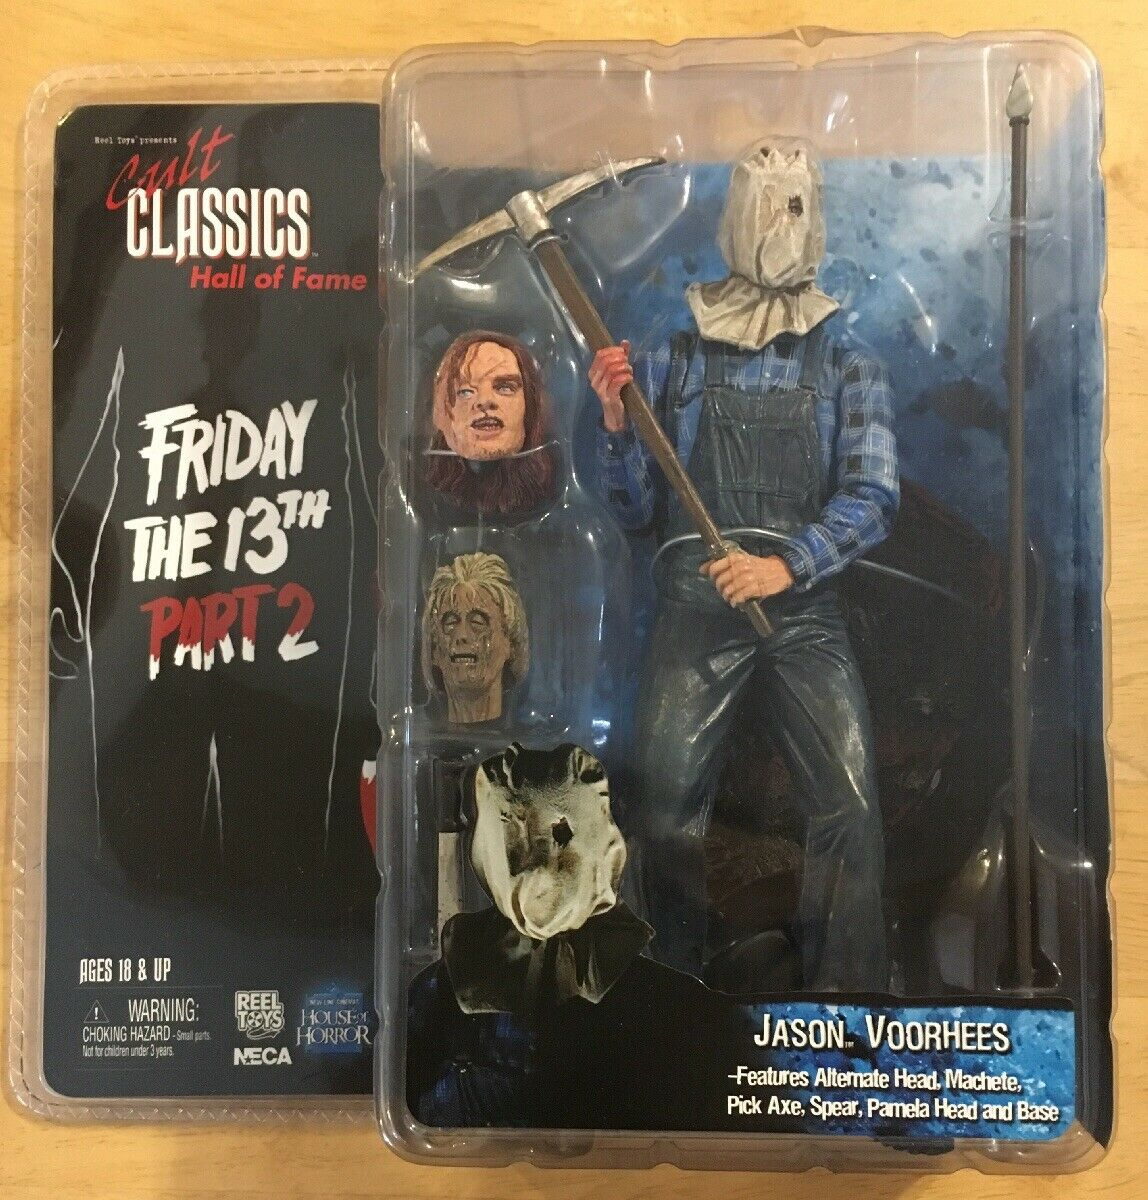 NECA Cult Cult Cult Classics Hall Of Fame Friday the 13th Part 2  Jason Voorhees Action... 40d352